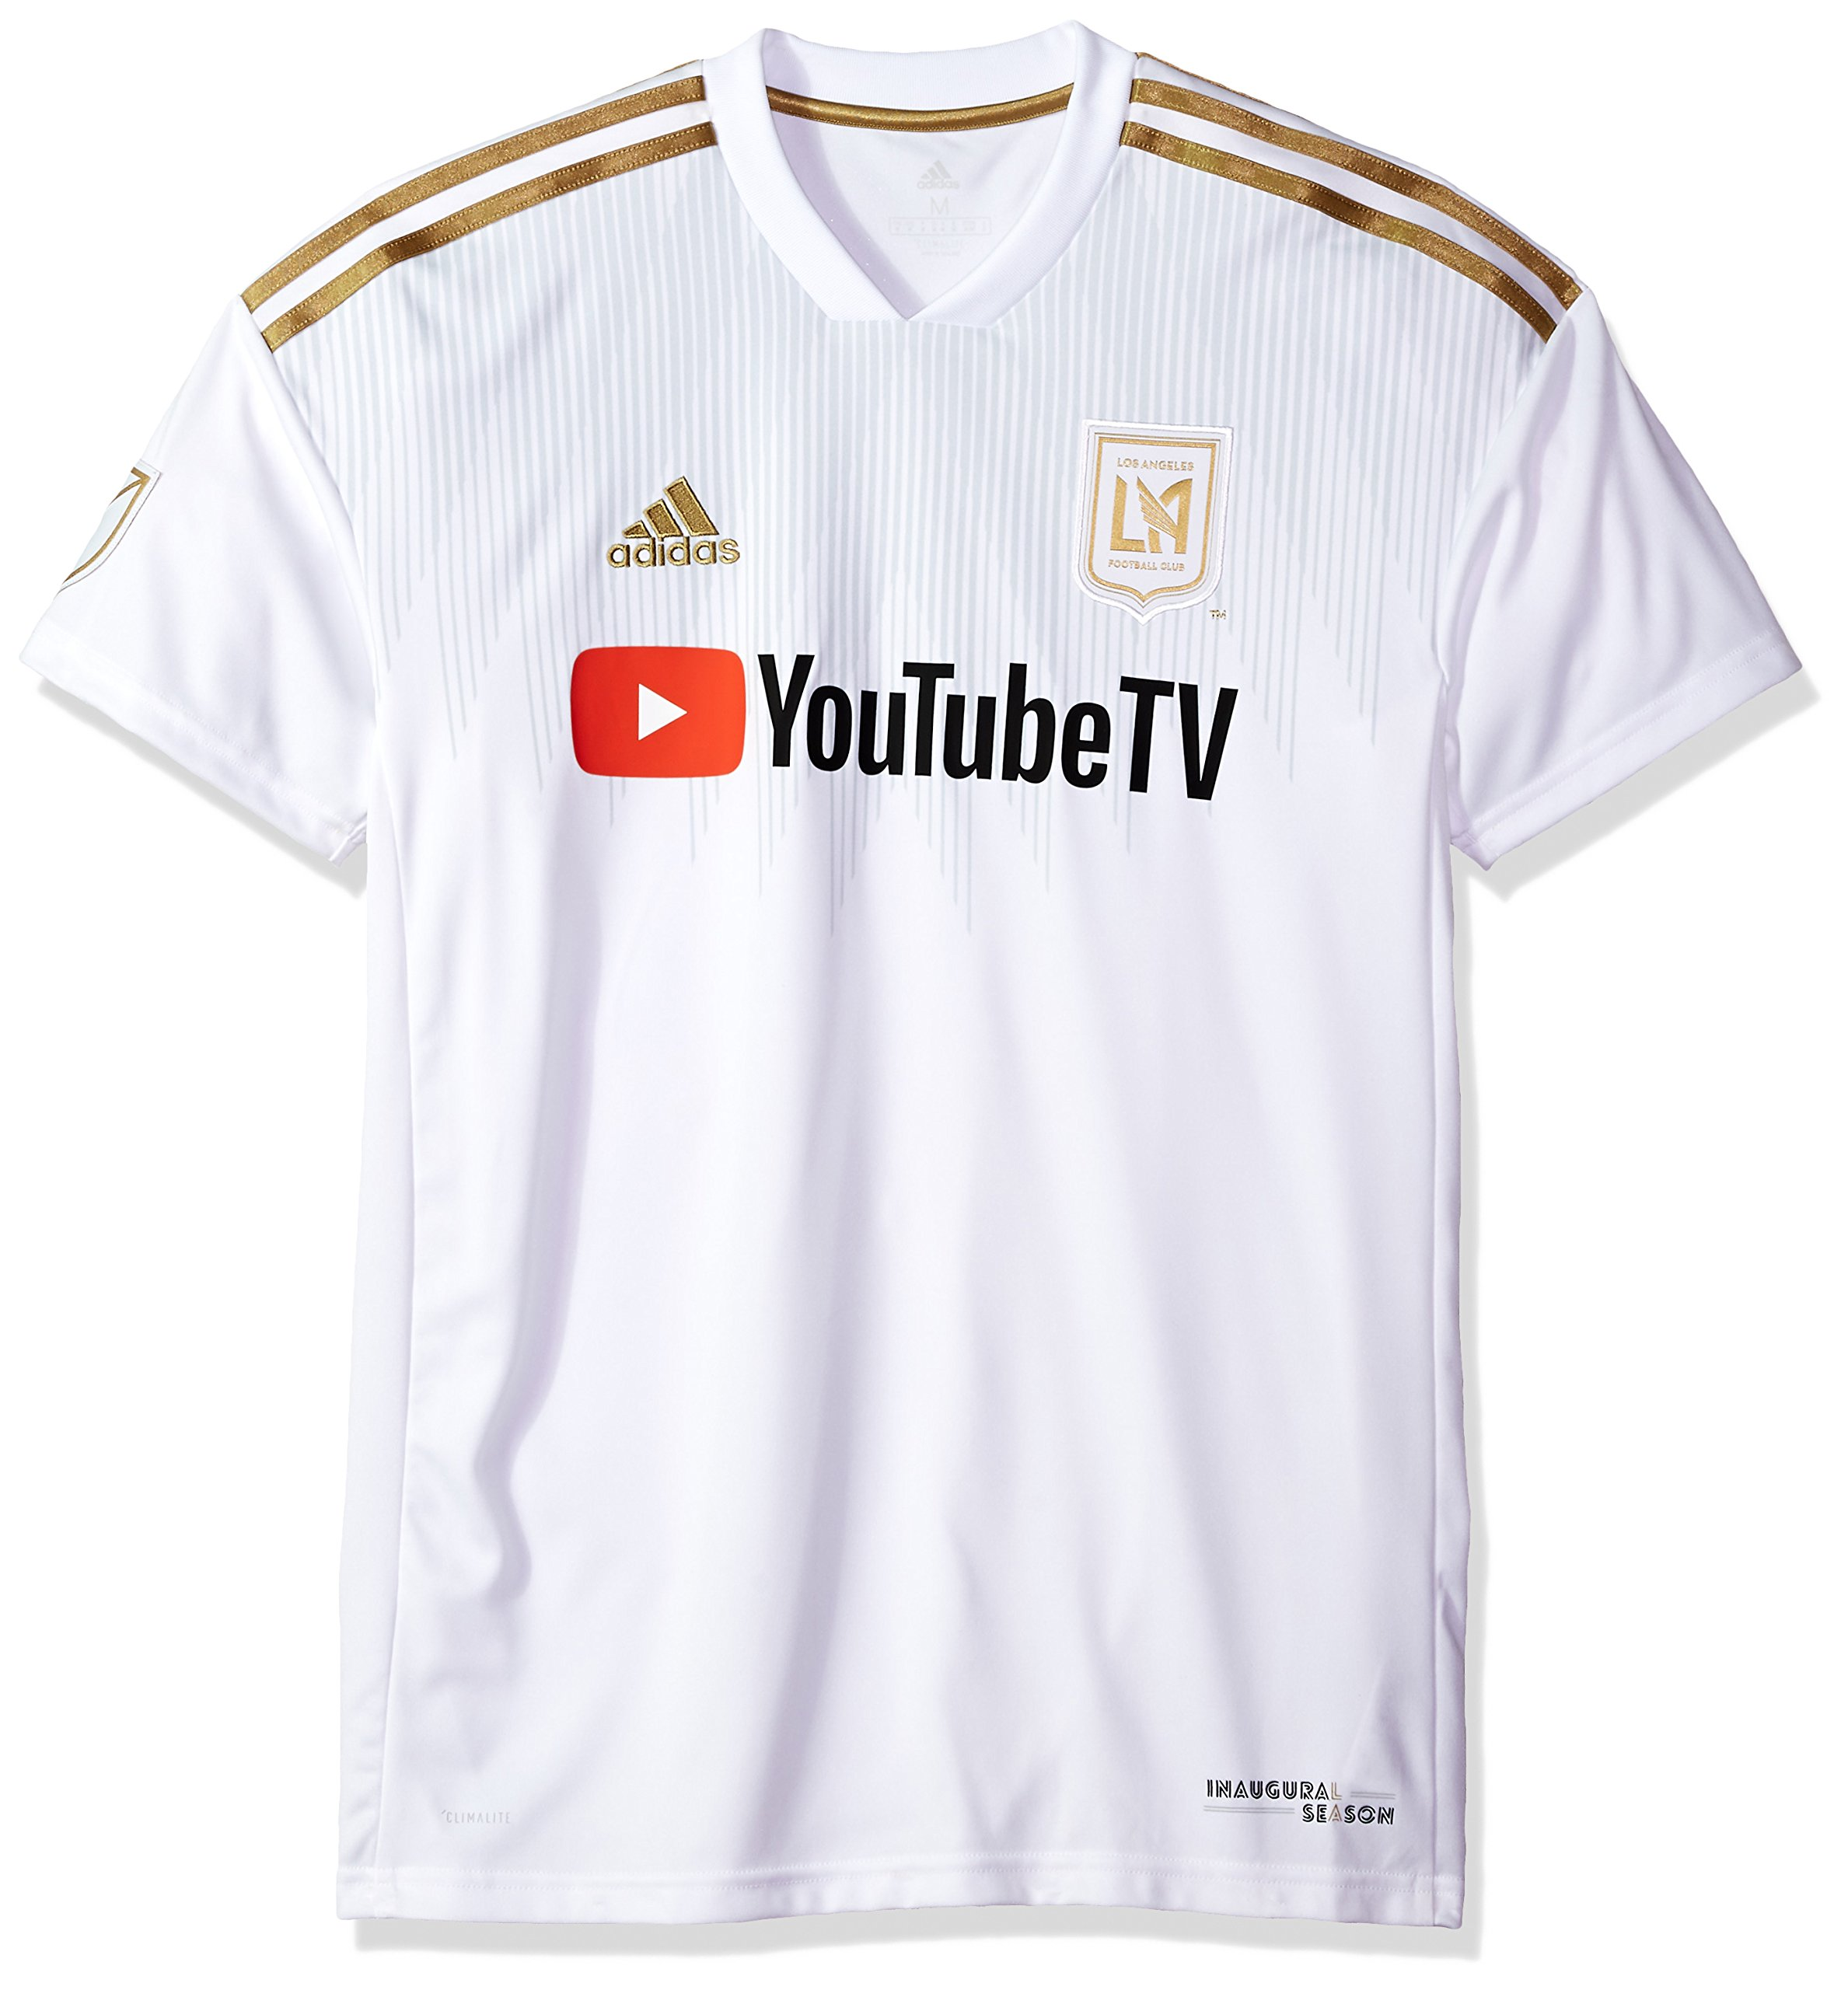 adidas MLS LAFC Men's Replica Jersey, Large, White